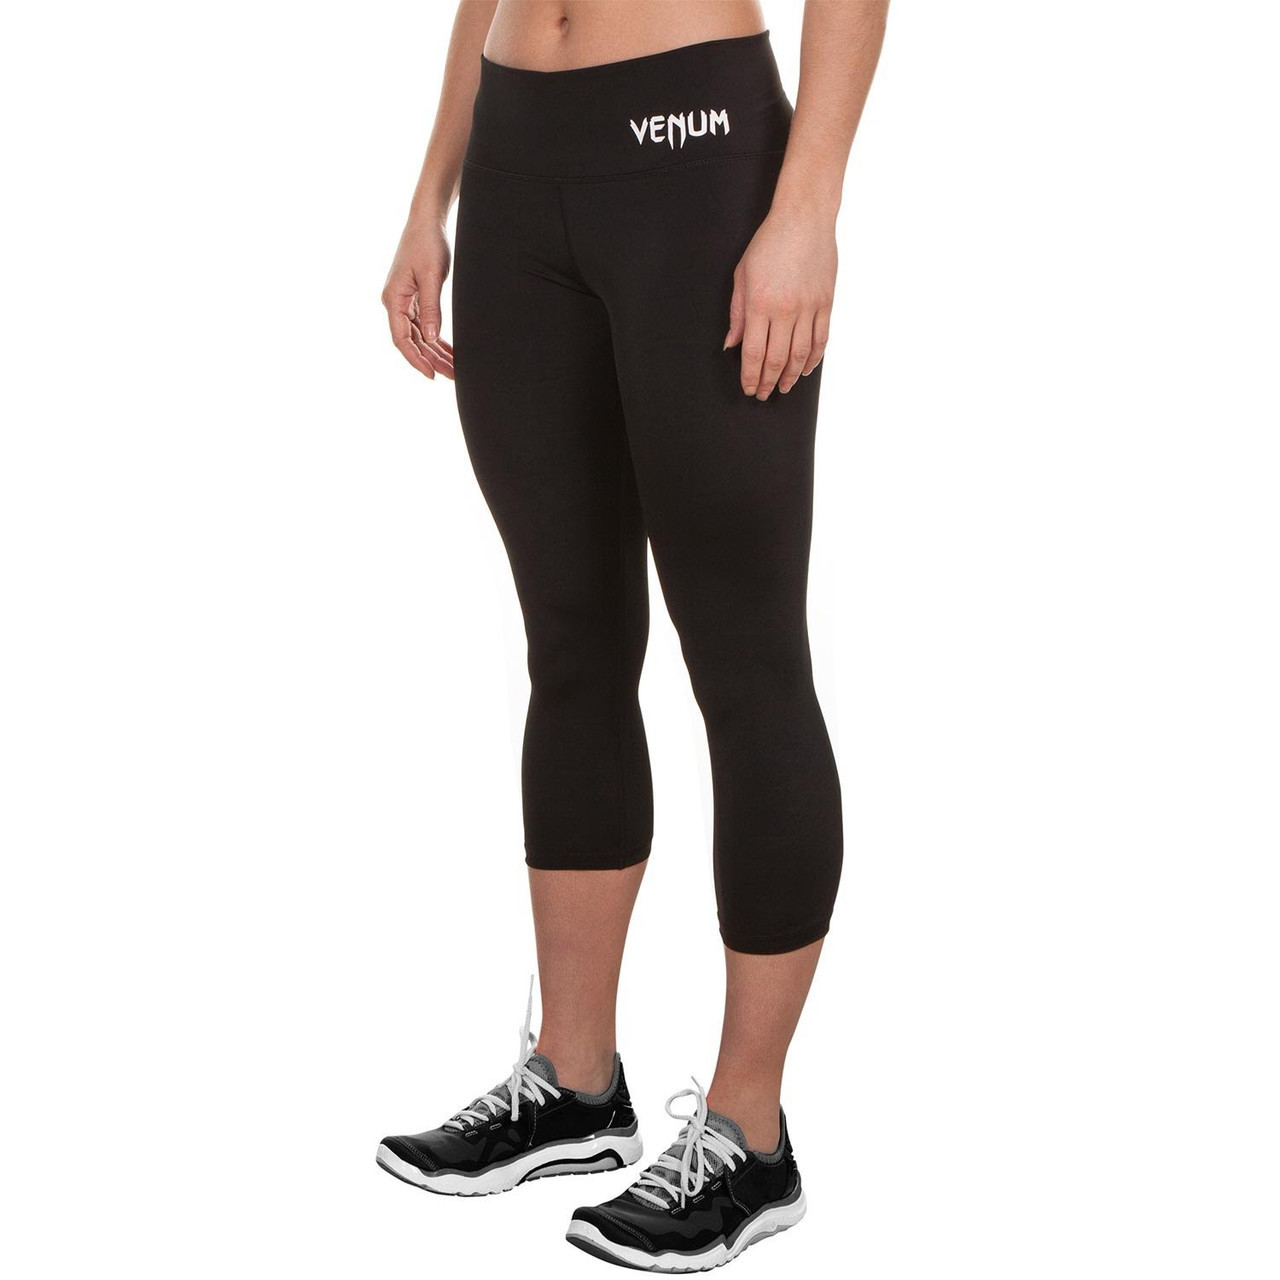 Front size of Venum Essential Leggings now available at www.thejiujitsushop.com  Enjoy Free Shipping from The Jiu Jitsu Shop today!